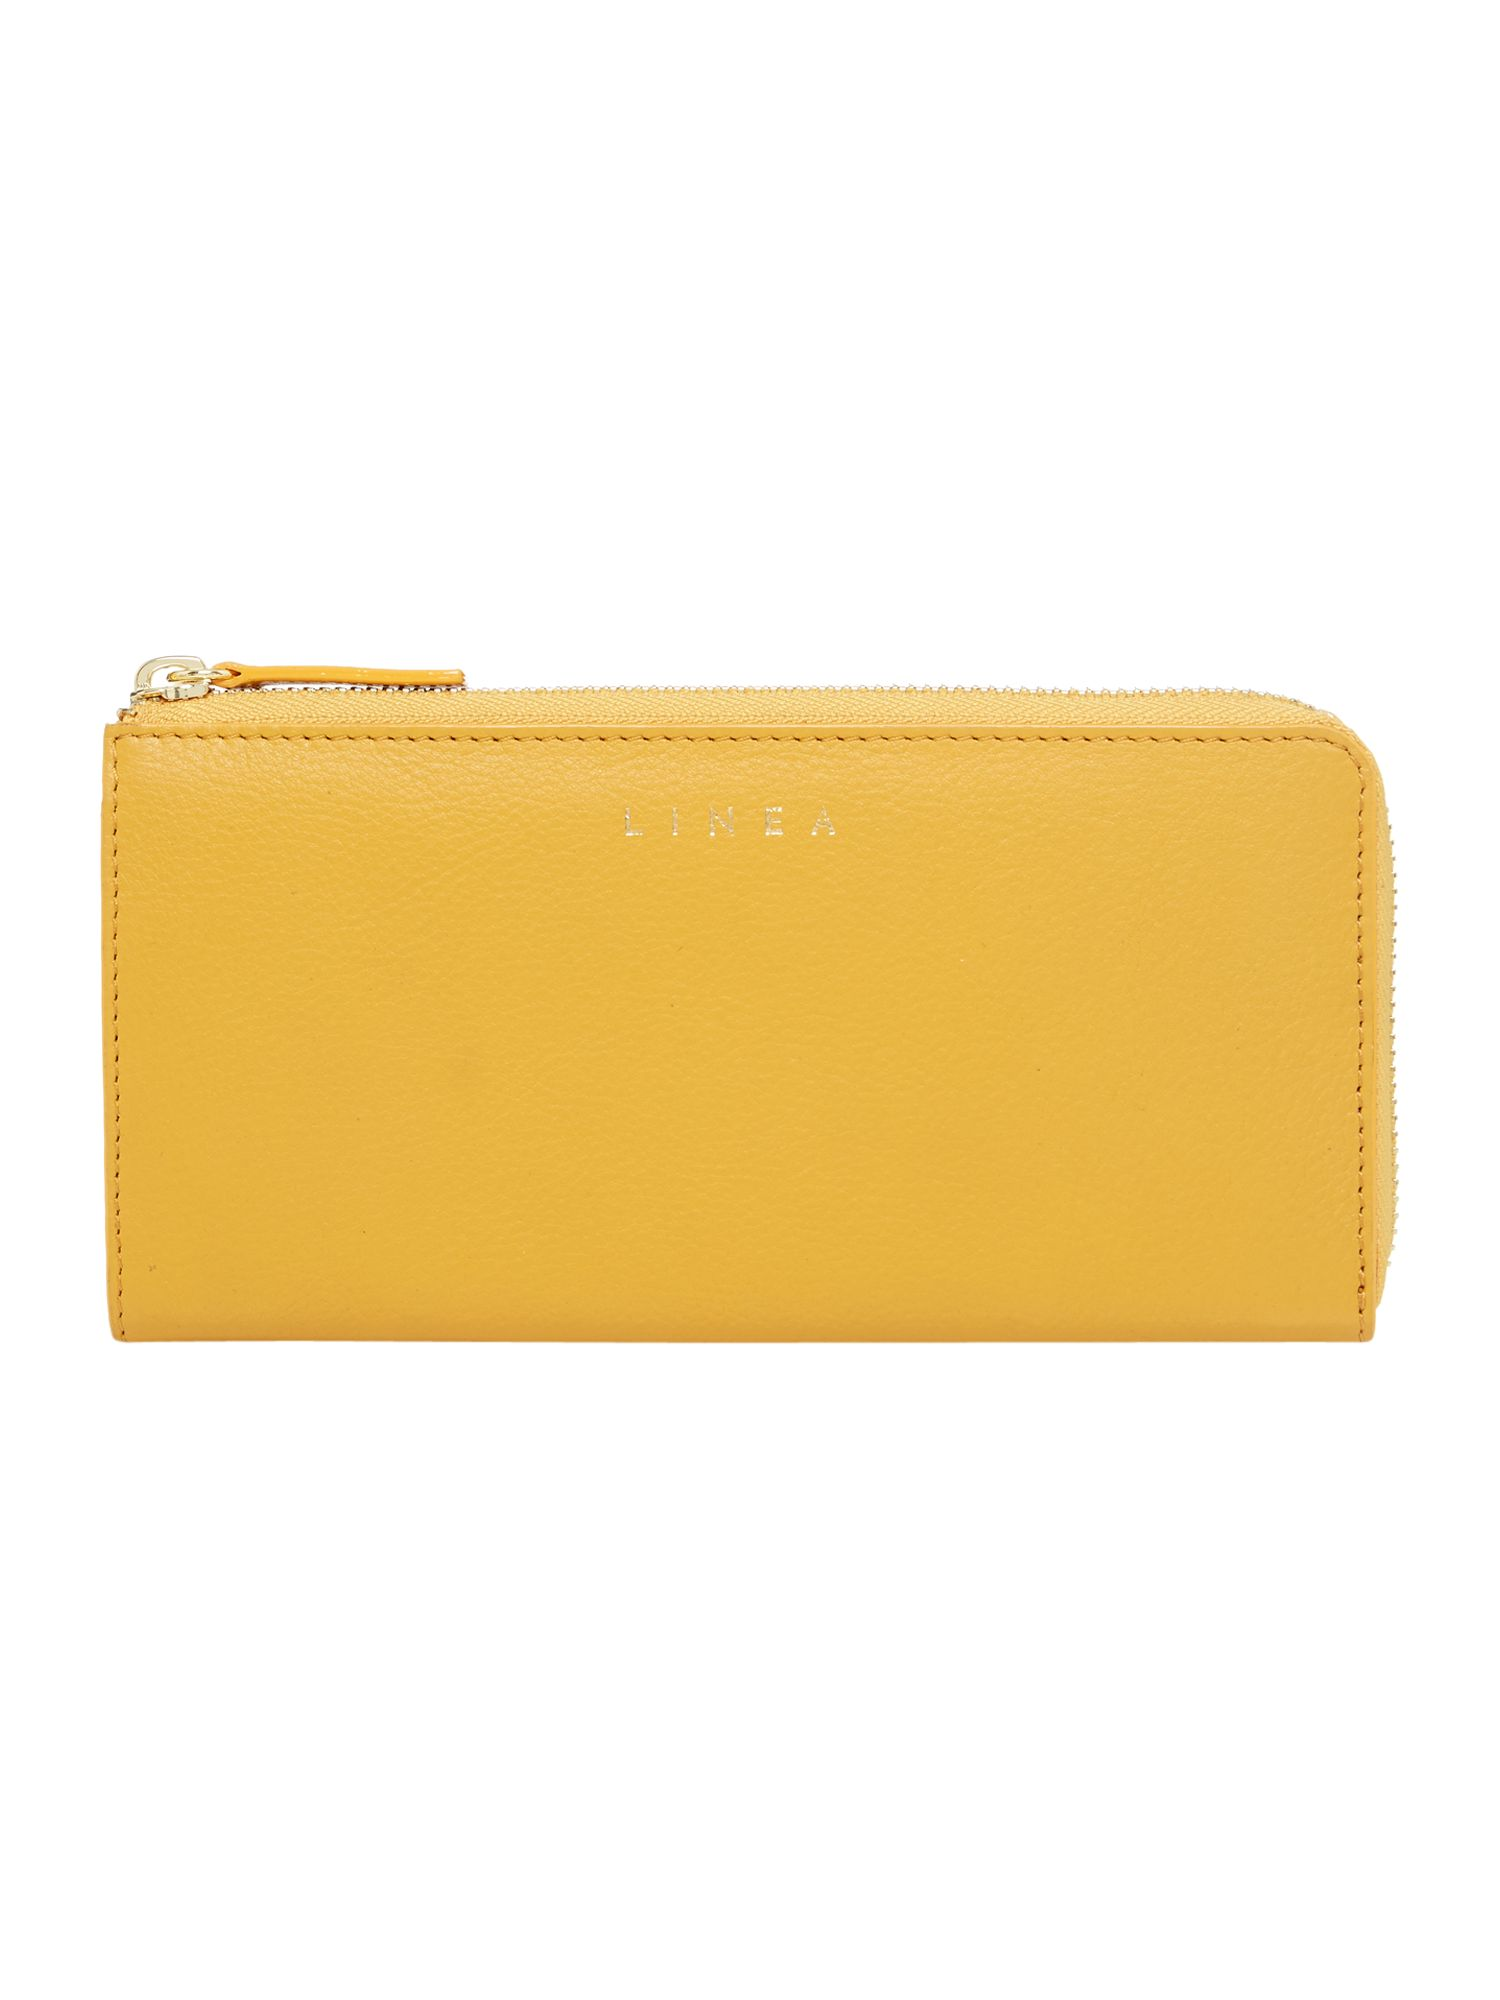 Linea Bennie Zip Around Leather Purse, Yellow